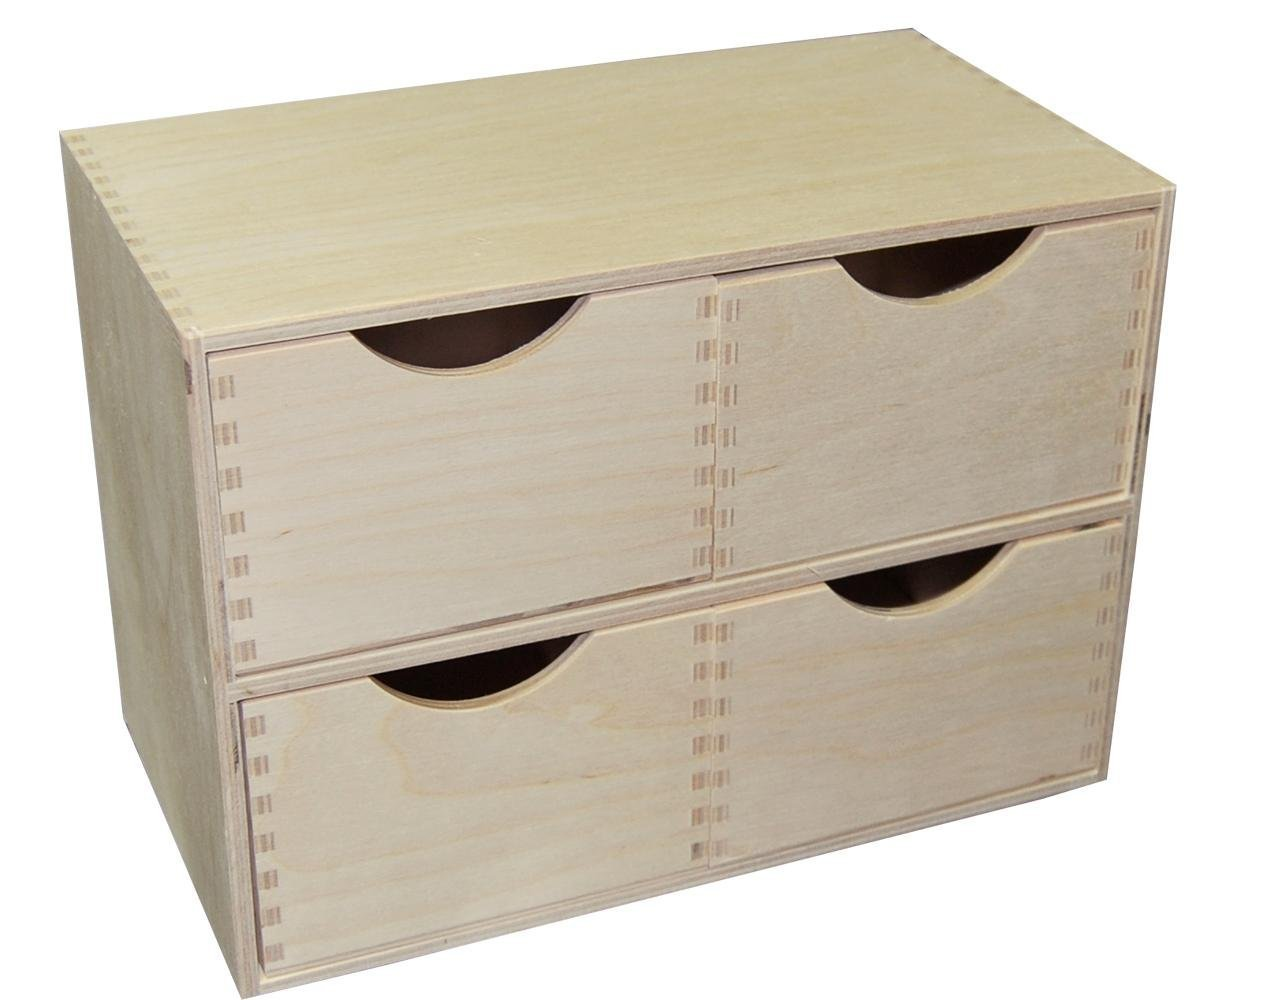 Decocraft PLAIN WOOD WOODEN BOX STORAGE CUPBOARD CHEST OF DRAWERS DECOUPAGE PYROGRAPHY 44r